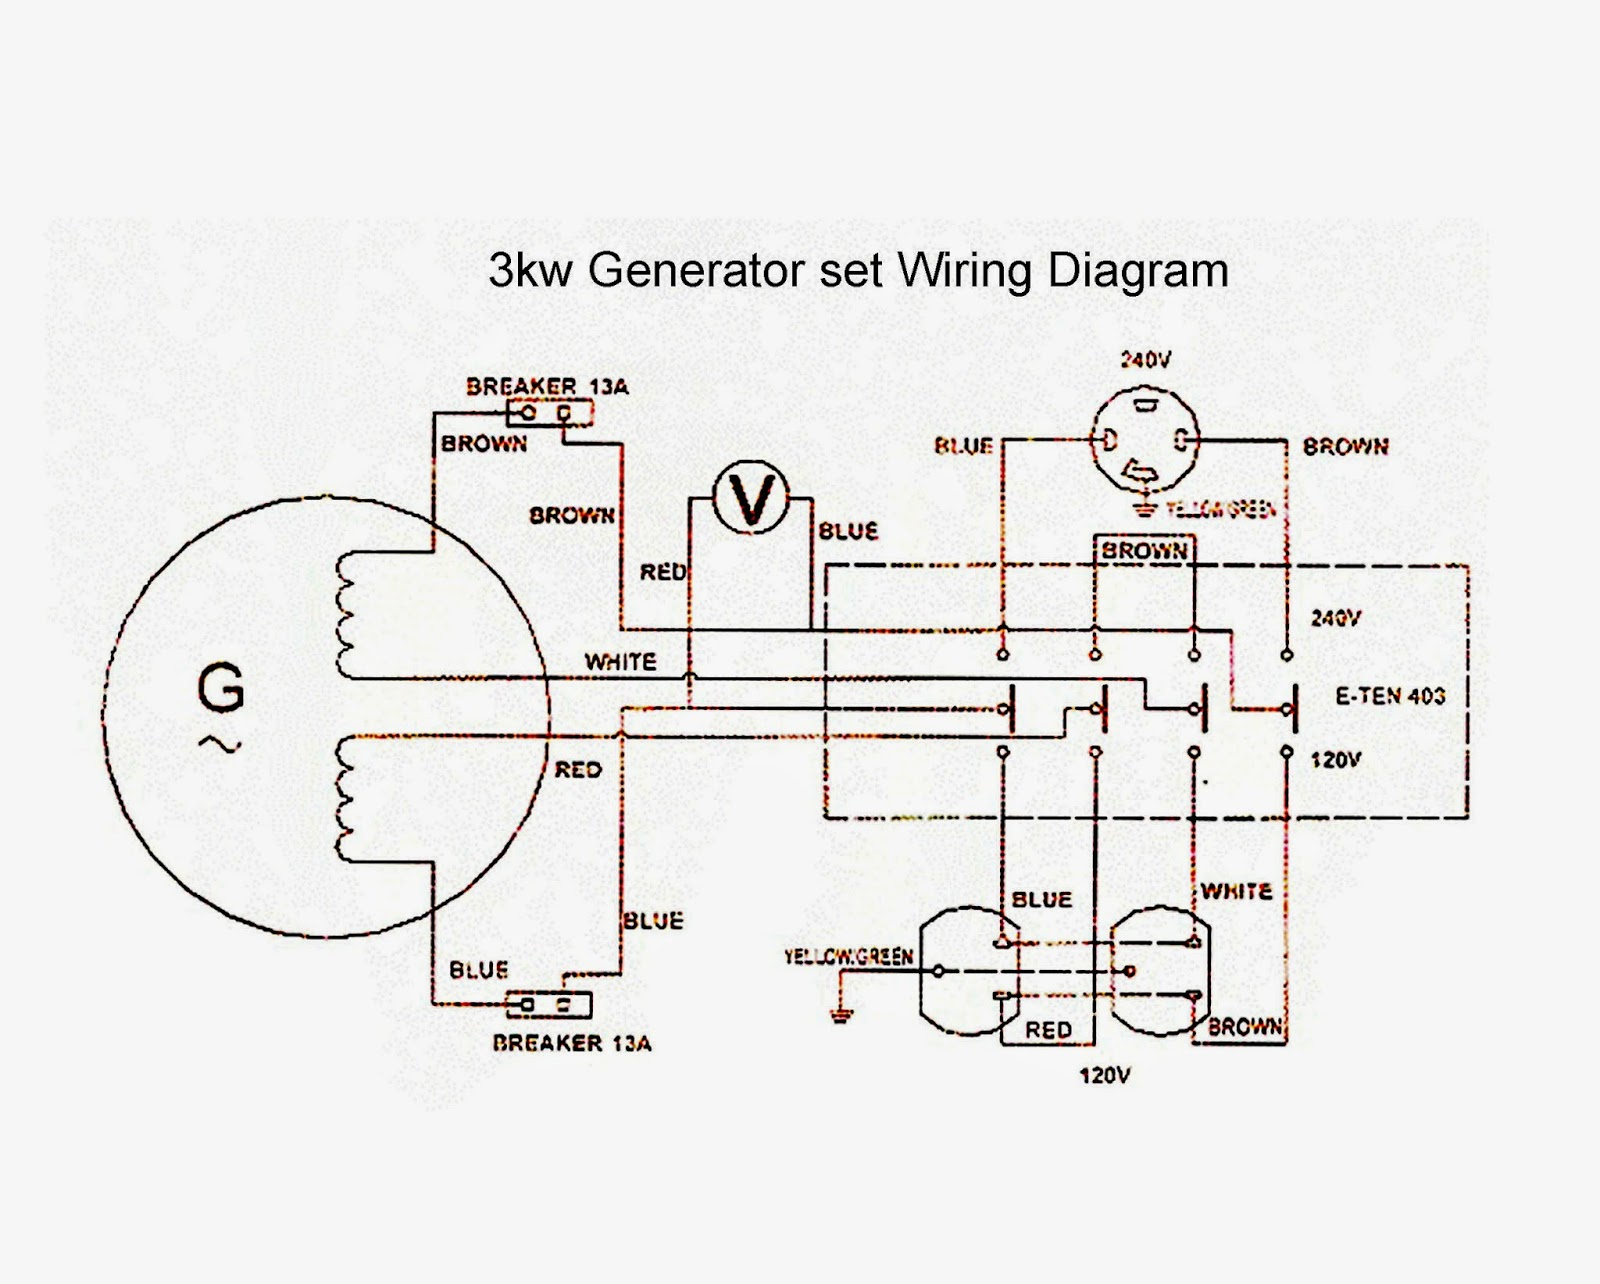 Ac Generator Wiring Schematics | Wiring Diagram on 3 phase thermostat diagram, 3 phase motor connection diagram, 3 phase generator diagram, 3 phase regulator, 3 phase converter diagram, 3 phase circuit, 3 phase inverter diagram, 3 phase schematic diagrams, 3 phase coil diagram, ceiling fan installation diagram, 3 phase connector diagram, 3 phase electricity diagram, 3 phase power, 3 phase relay, 3 phase block diagram, 3 phase wire, 3 phase electric panel diagrams, 3 phase plug, 3 phase cable, 3 phase transformers diagram,